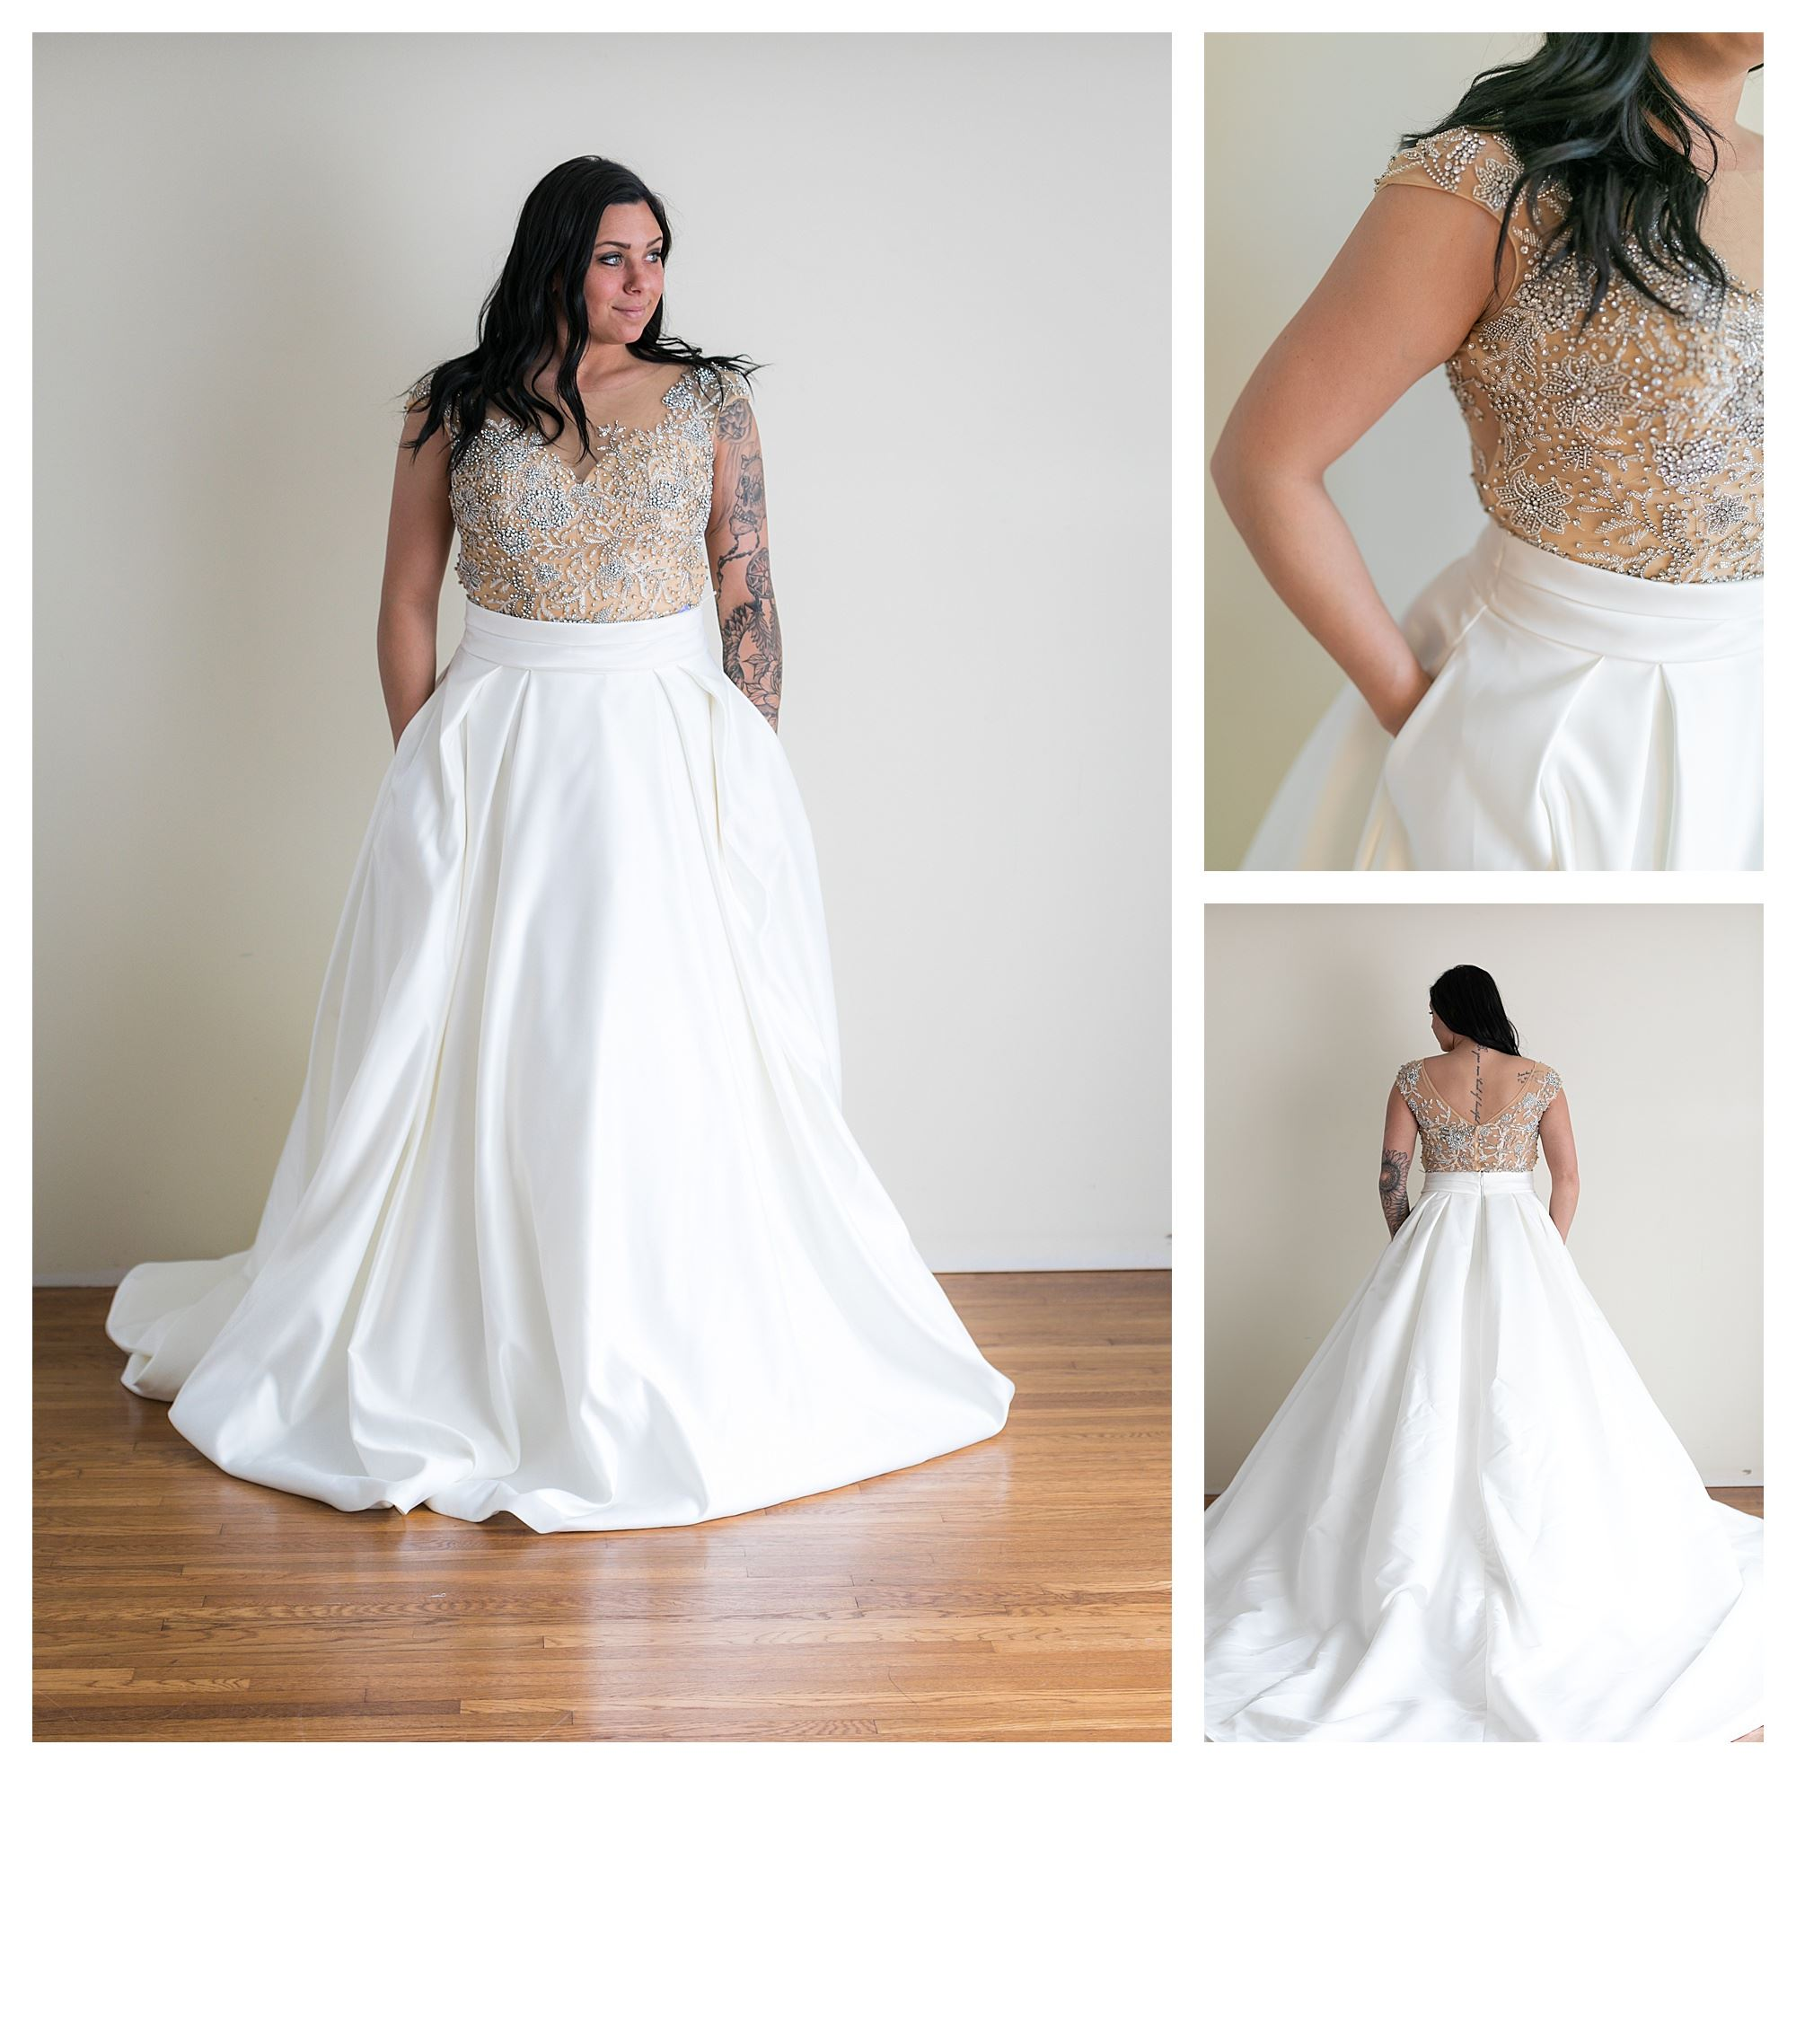 Shoshana - Size 12 - Ivory/Nude - Originally priced $1099 - Sample box price $799